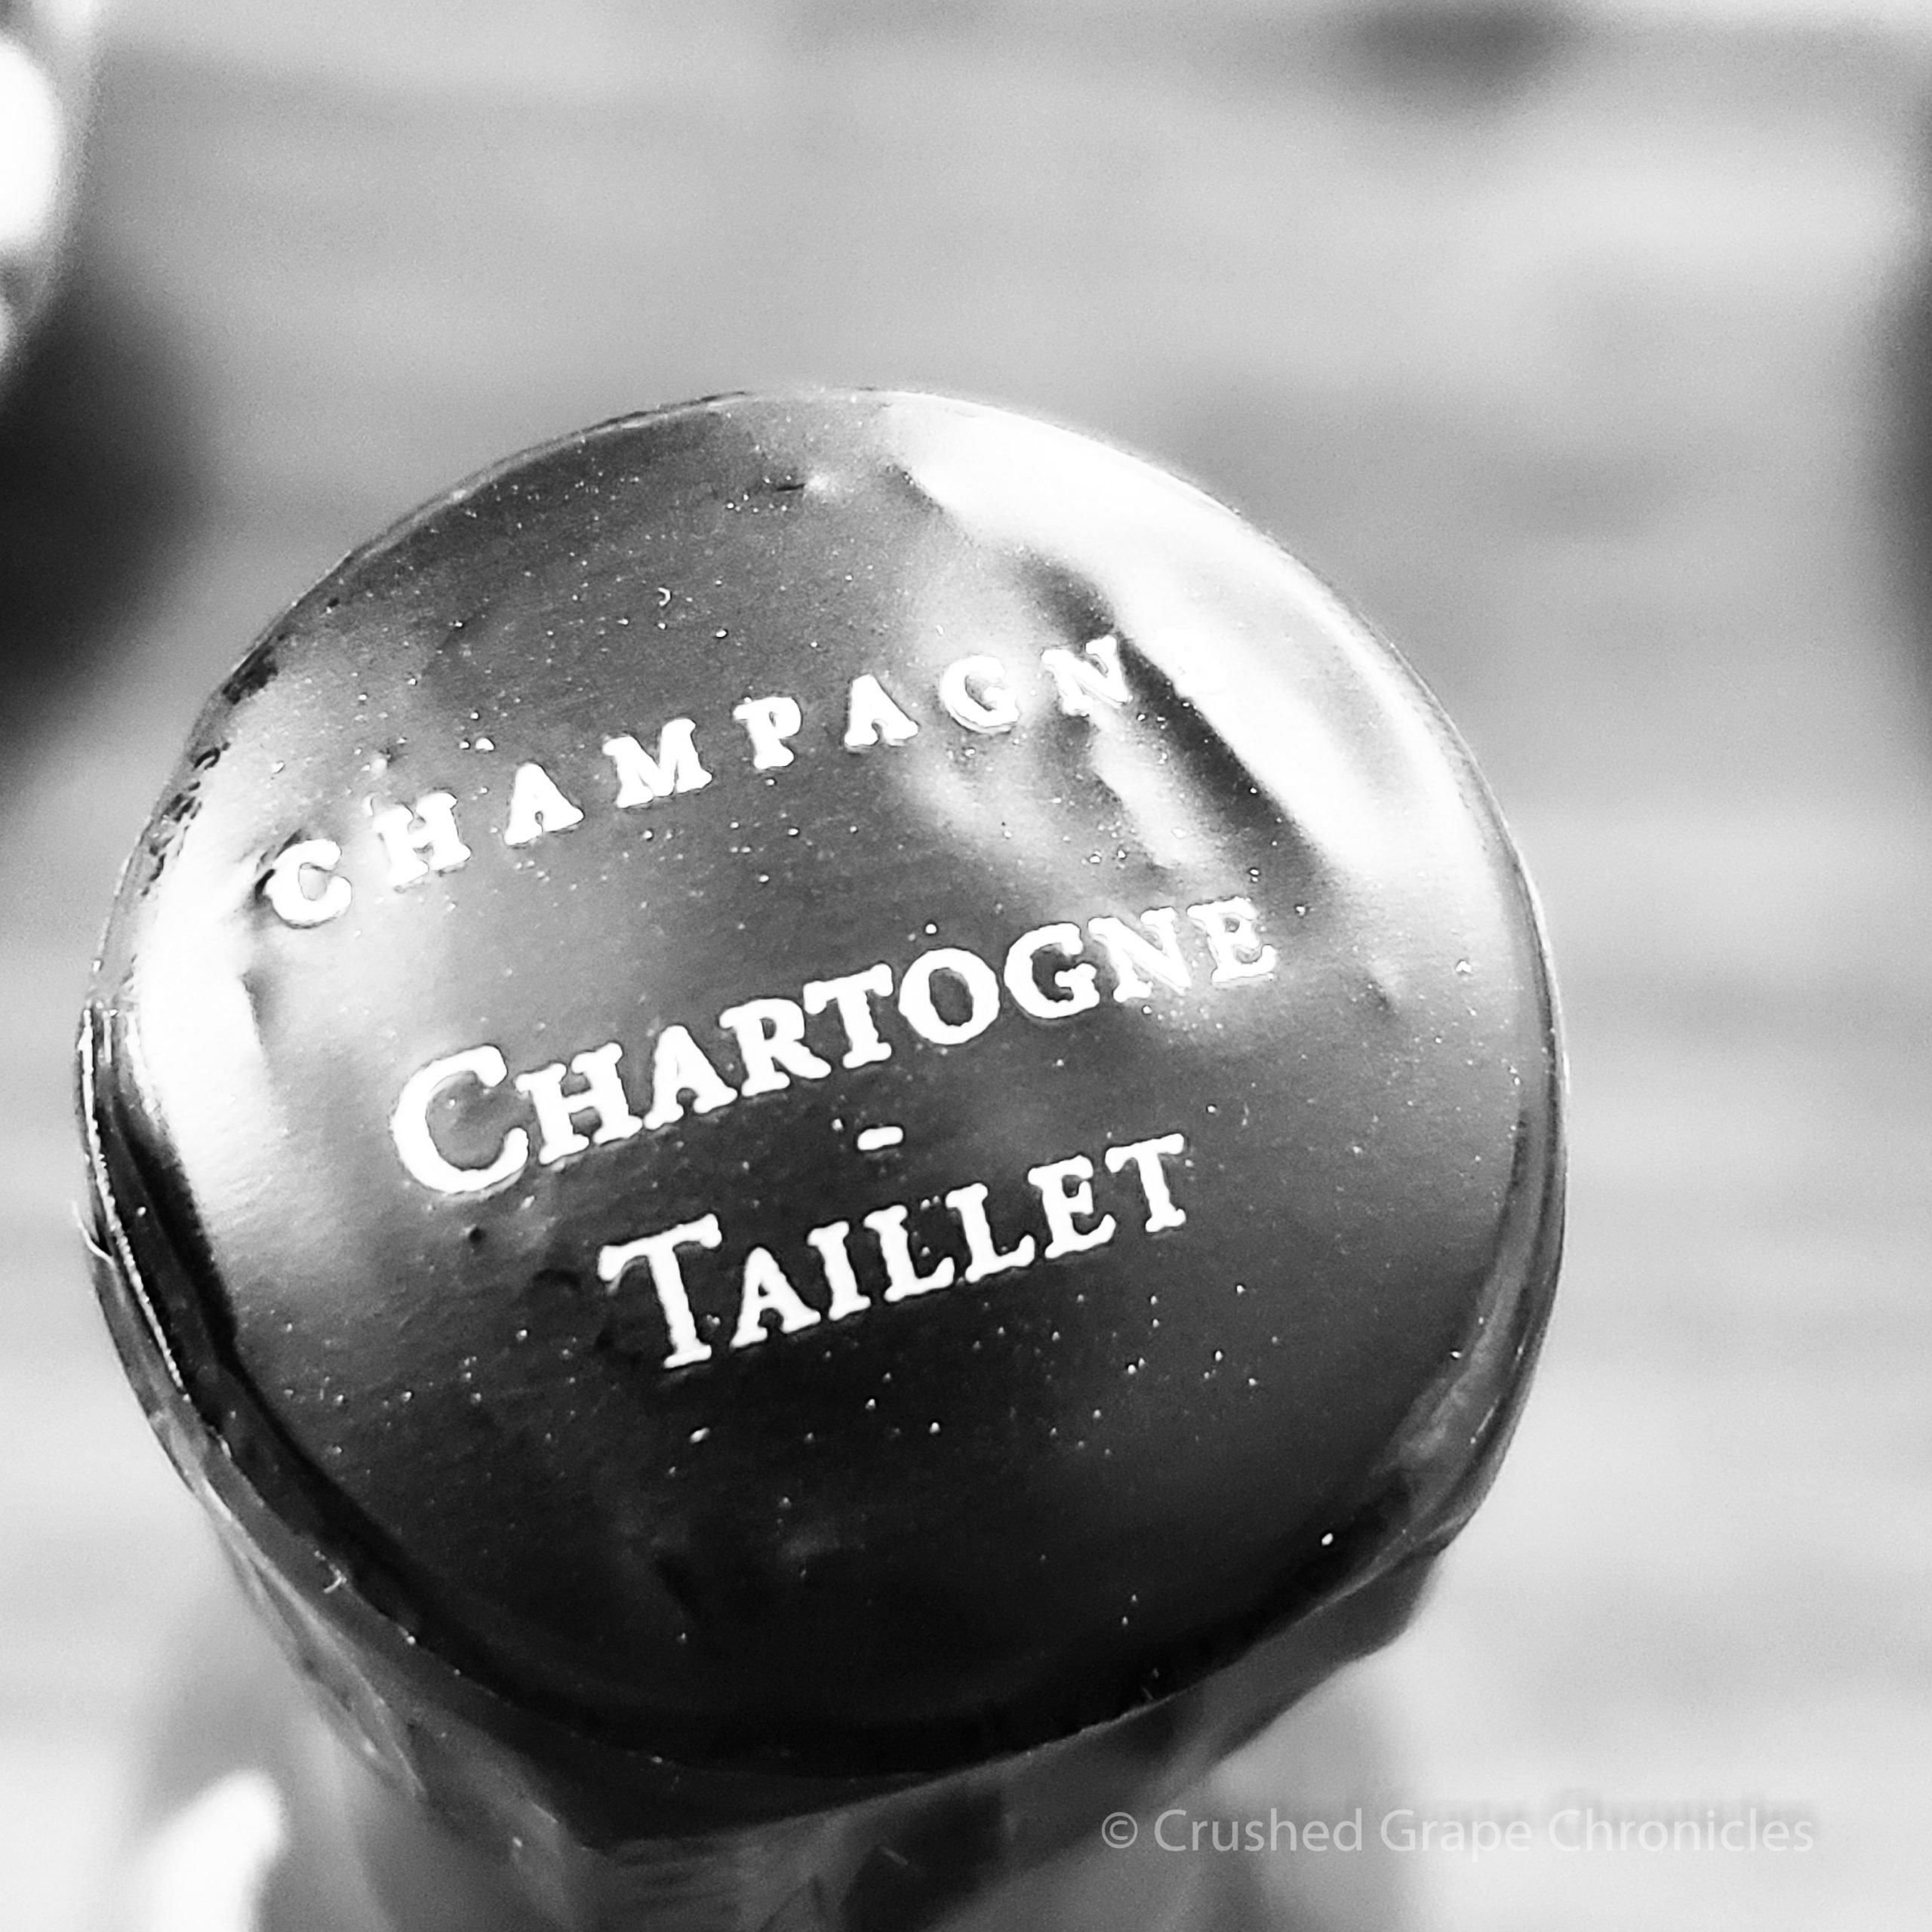 Anticipation...waiting to pop open this bottle.  The top of the bottle, cork still under the foil of Champagne Chartogne-Taillet